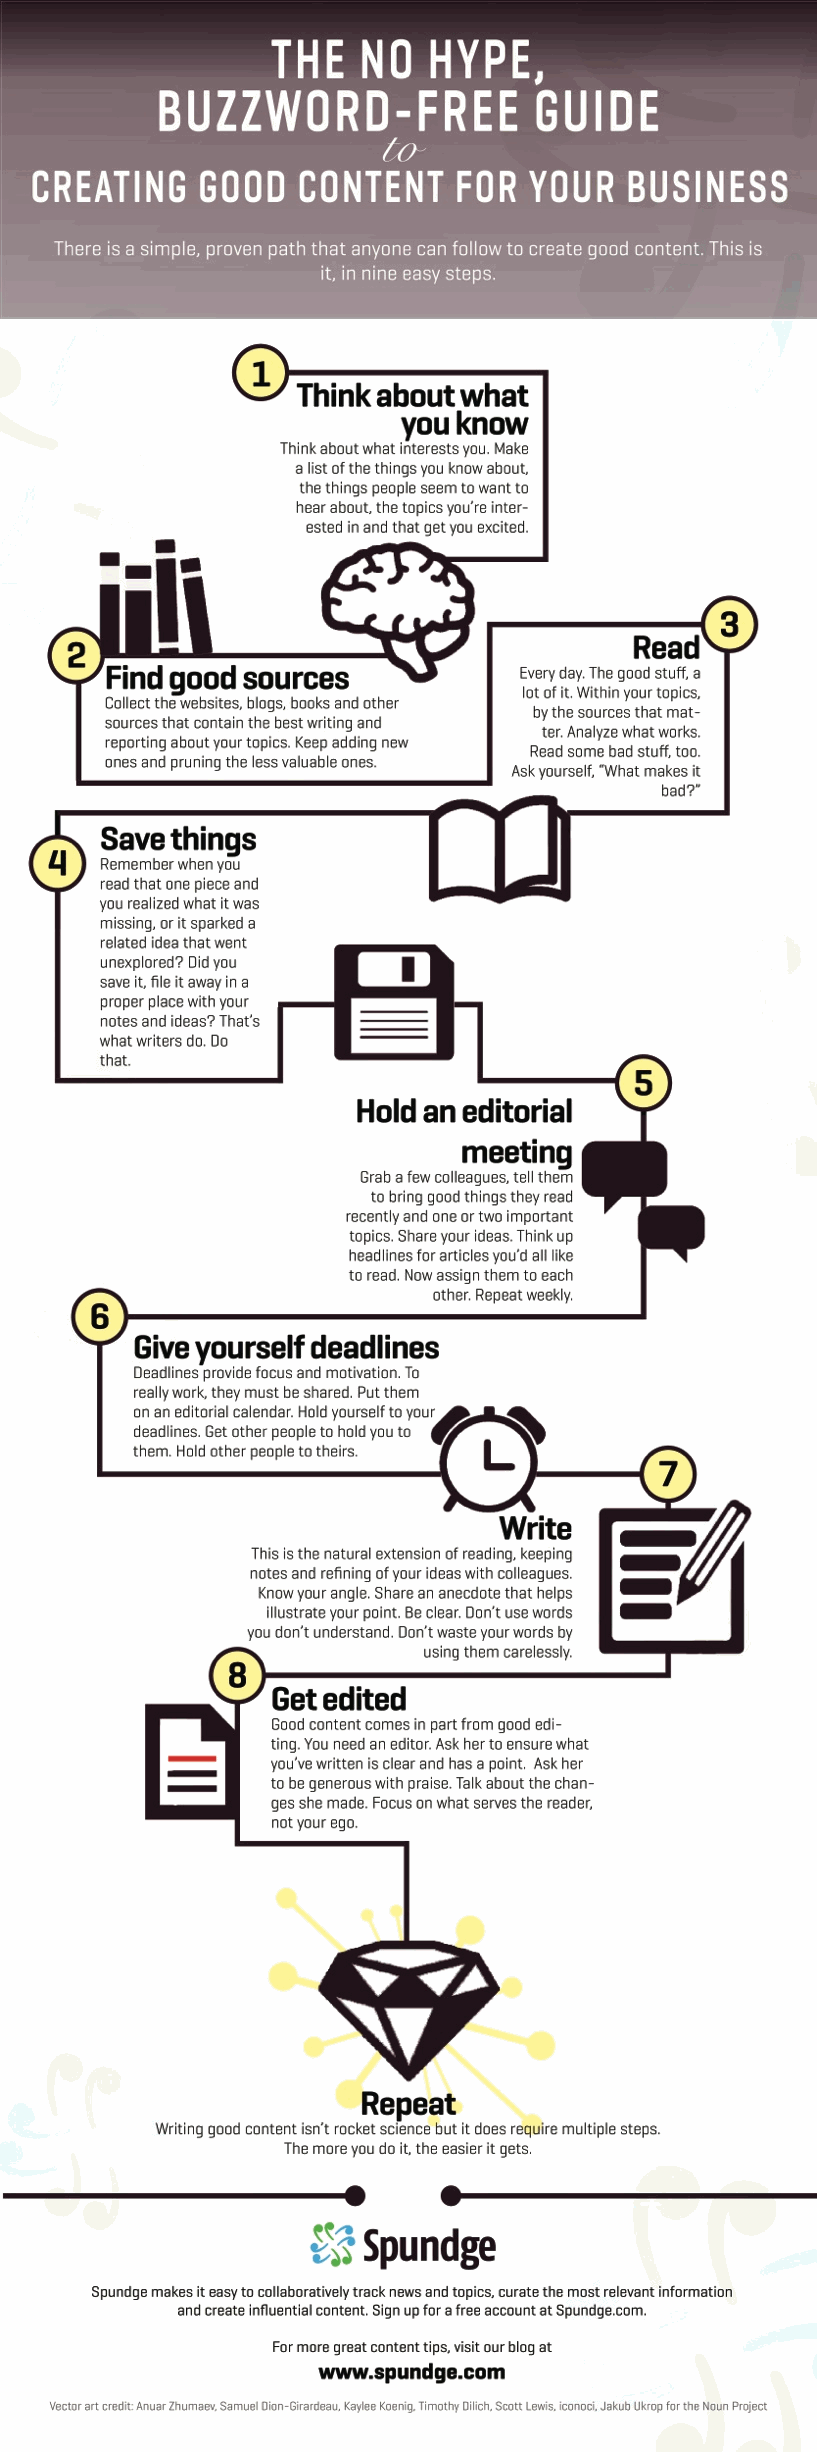 How To Create Good Content For Your Business [Flowchart]